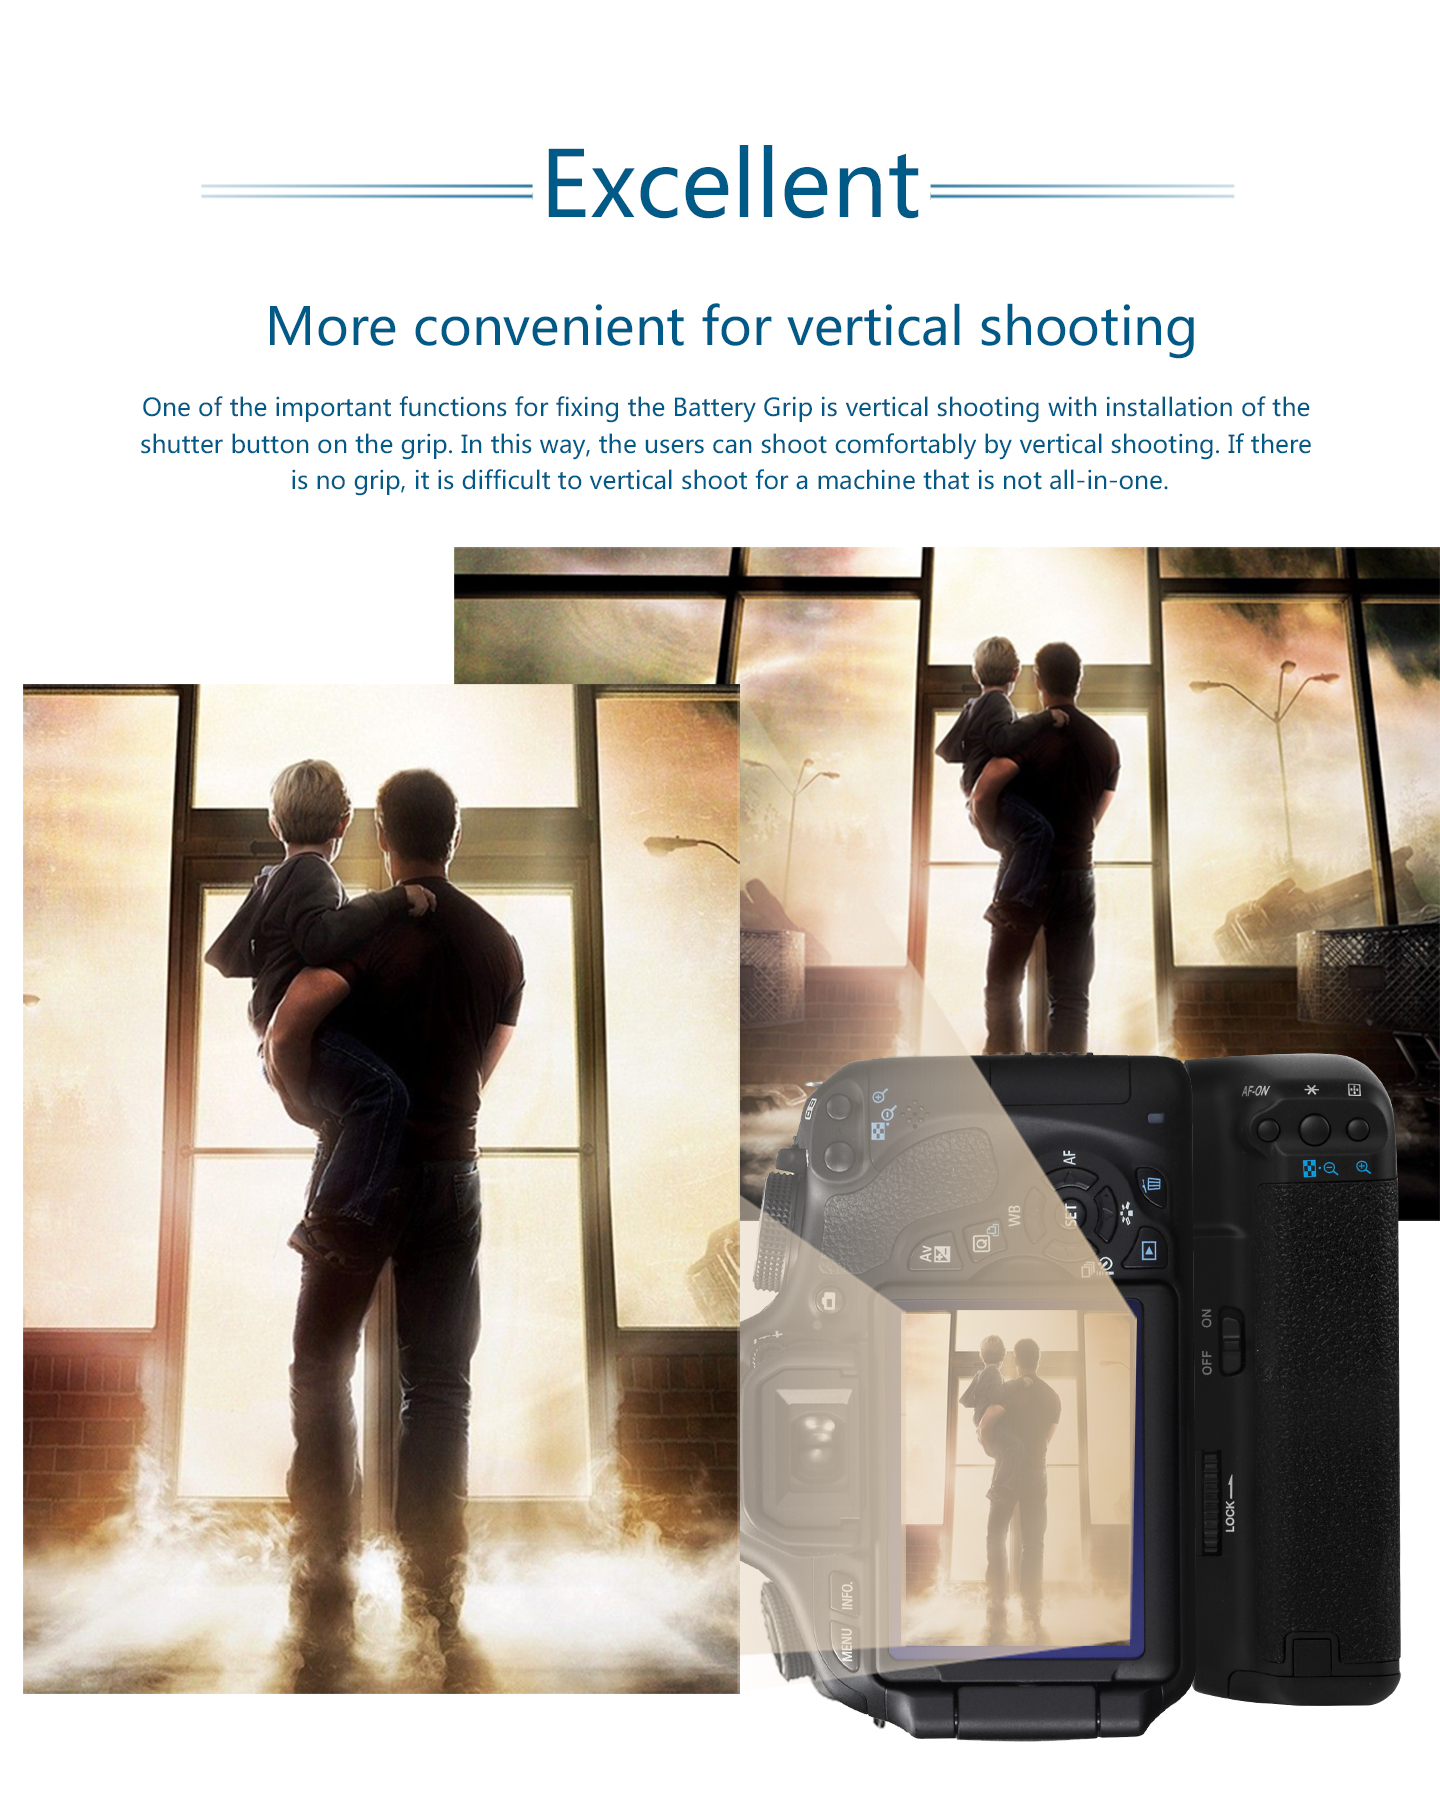 More convenient for vertical shooting